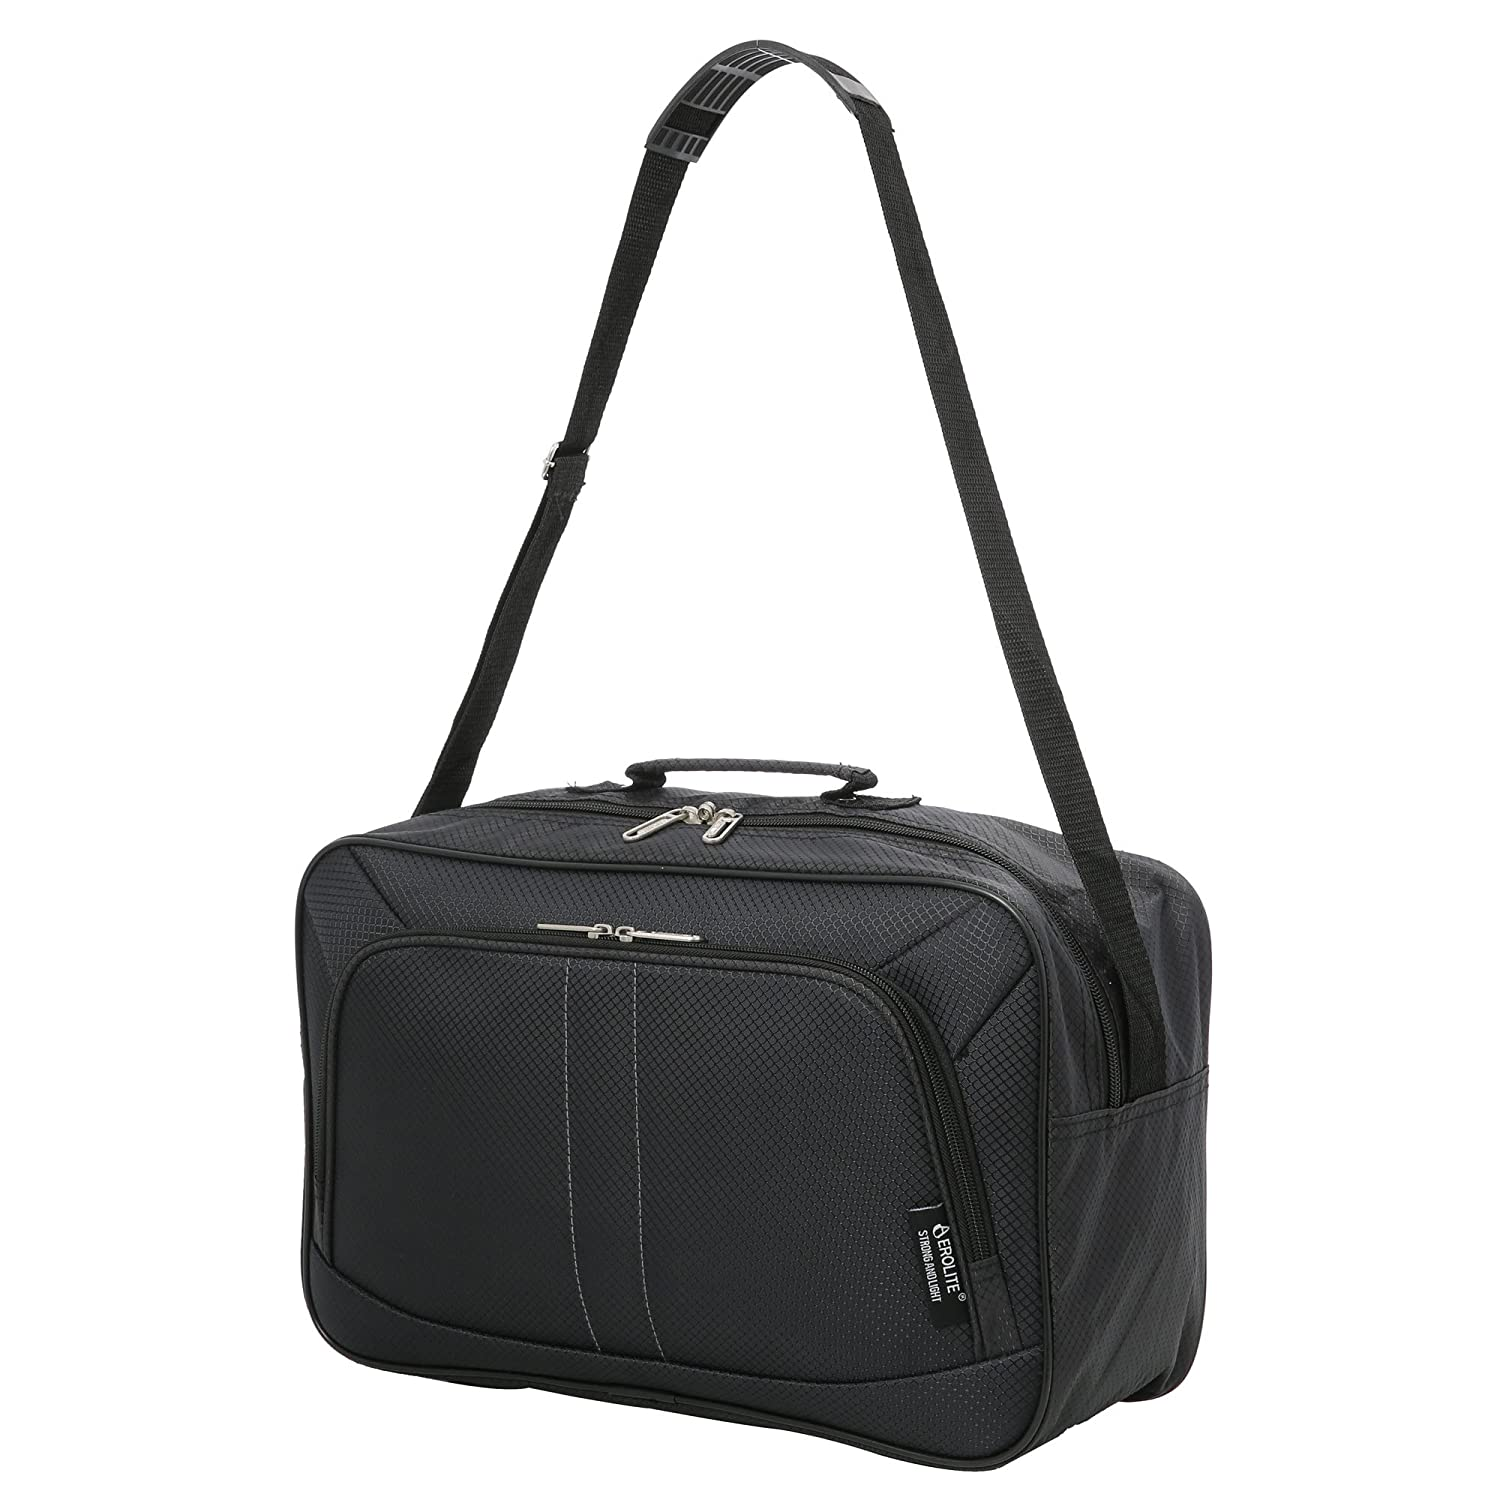 a8b76af4786 16 Inch Aerolite Carry On Hand Luggage Flight Duffle Bag, 2nd Bag or  Underseat, 19L